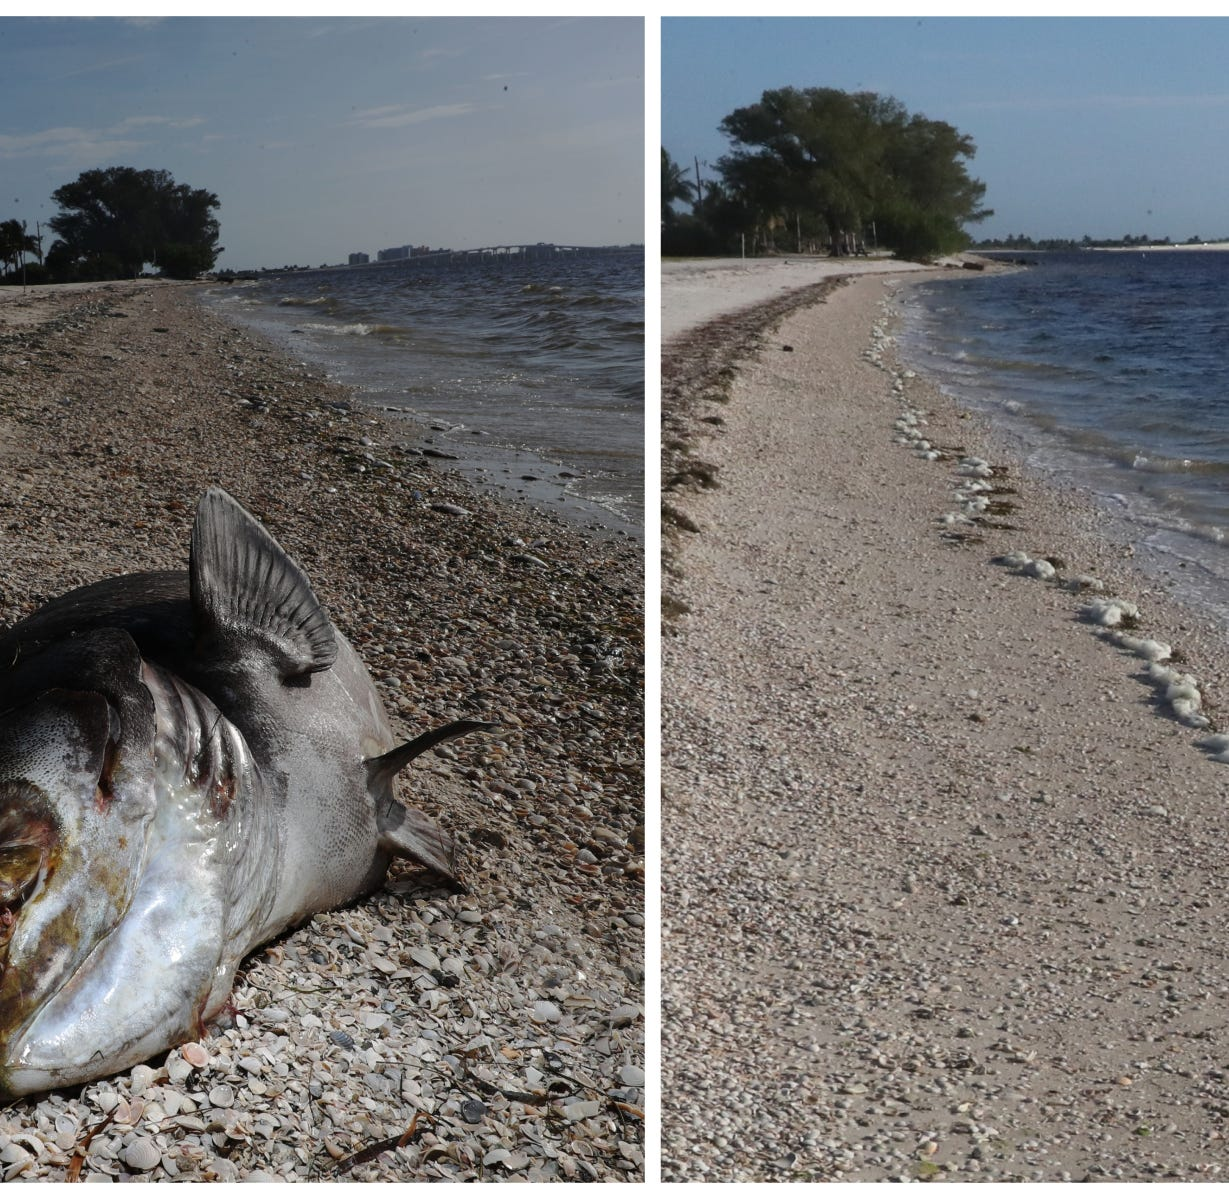 A dead Goliath grouper was photographed on the Sanibel Causeway on Aug. 1, 2018. An image from the same beach was recaptured on Oct. 23, 2018.